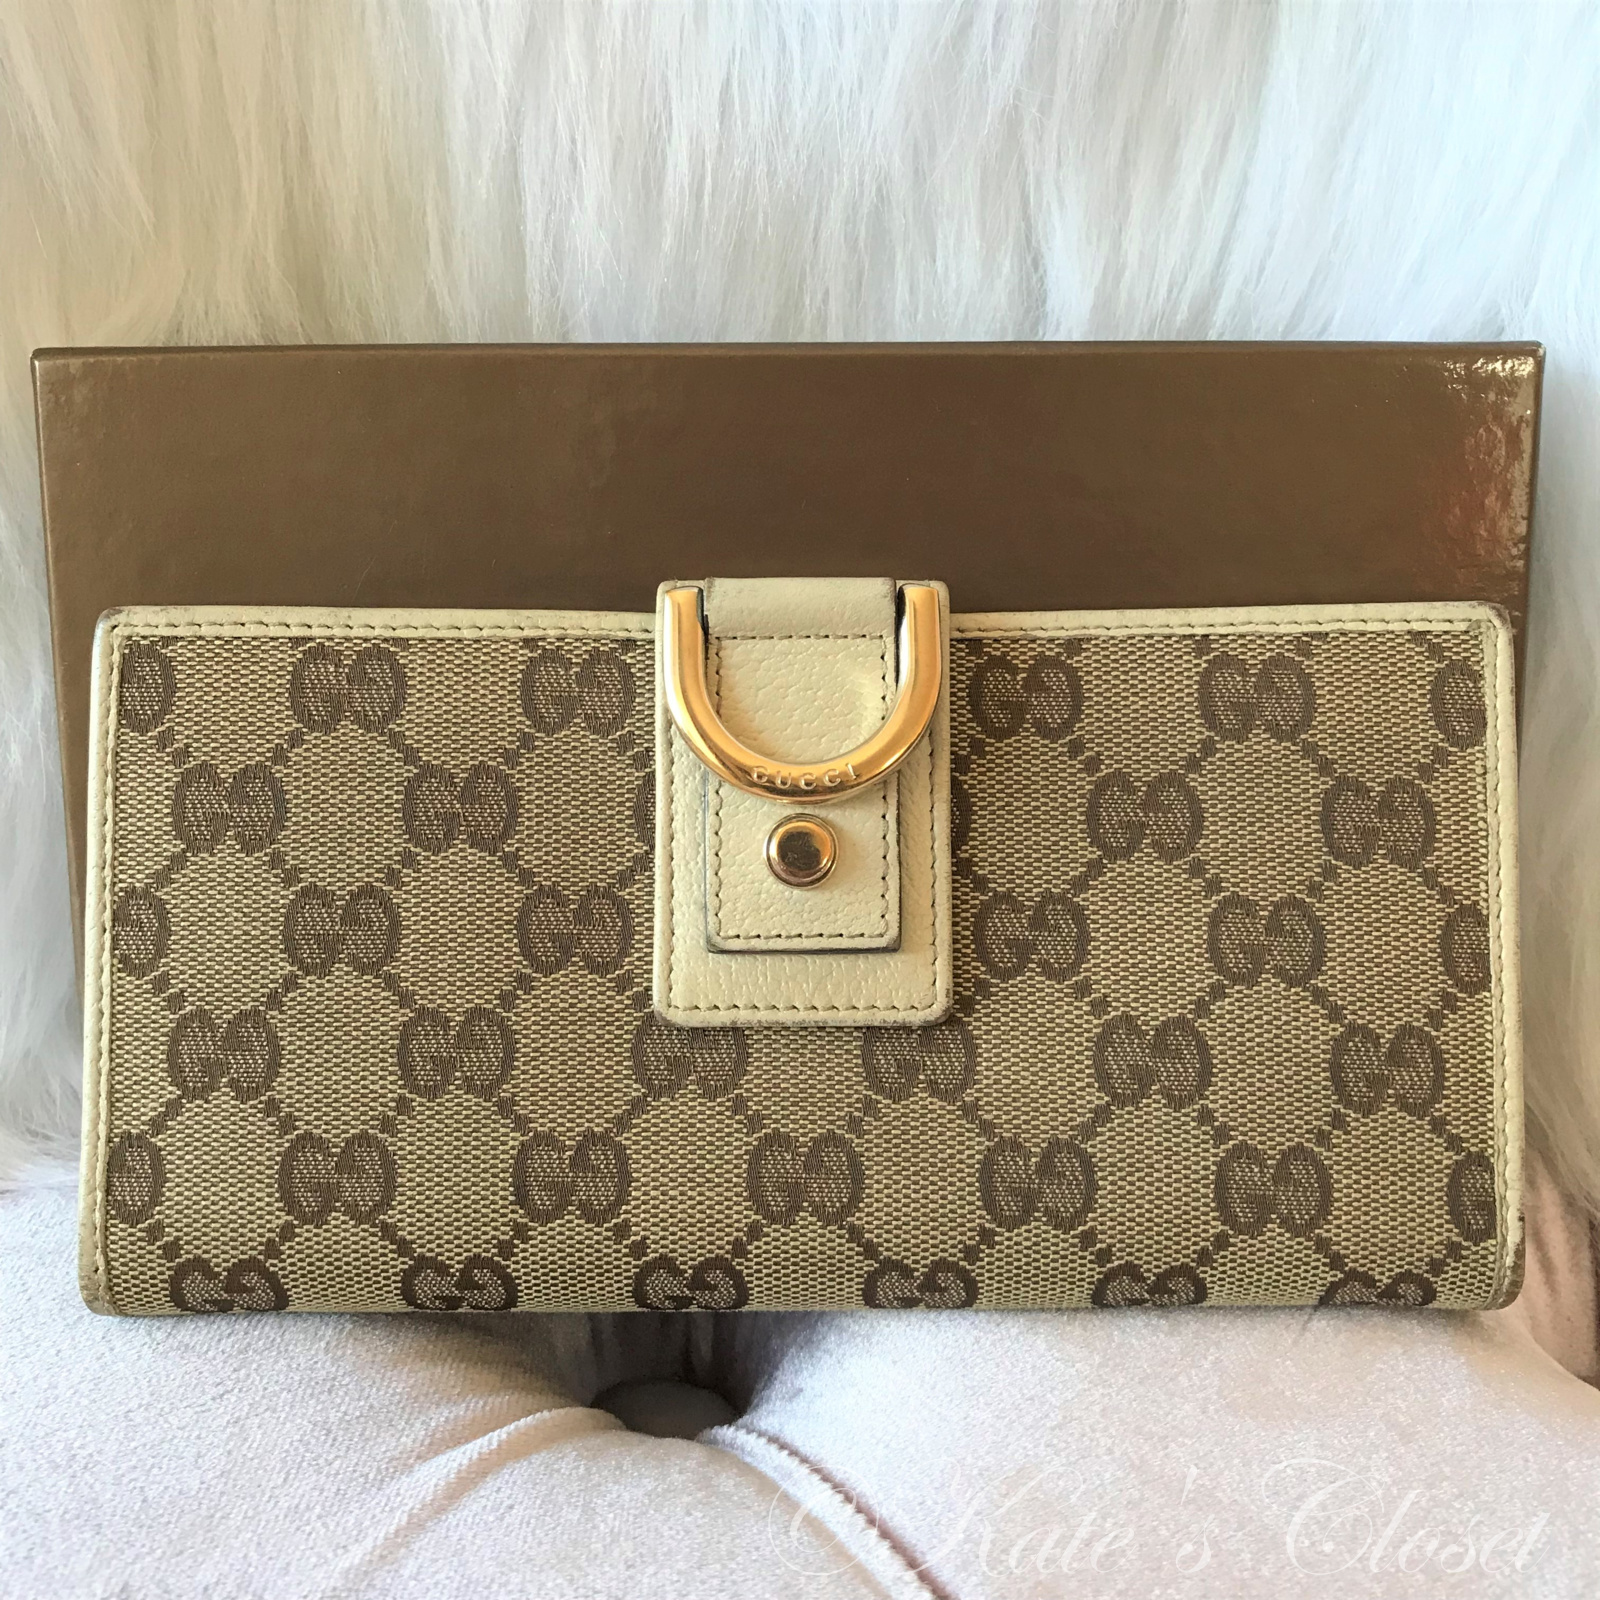 Gucci Canvas Wallet- Beige/White